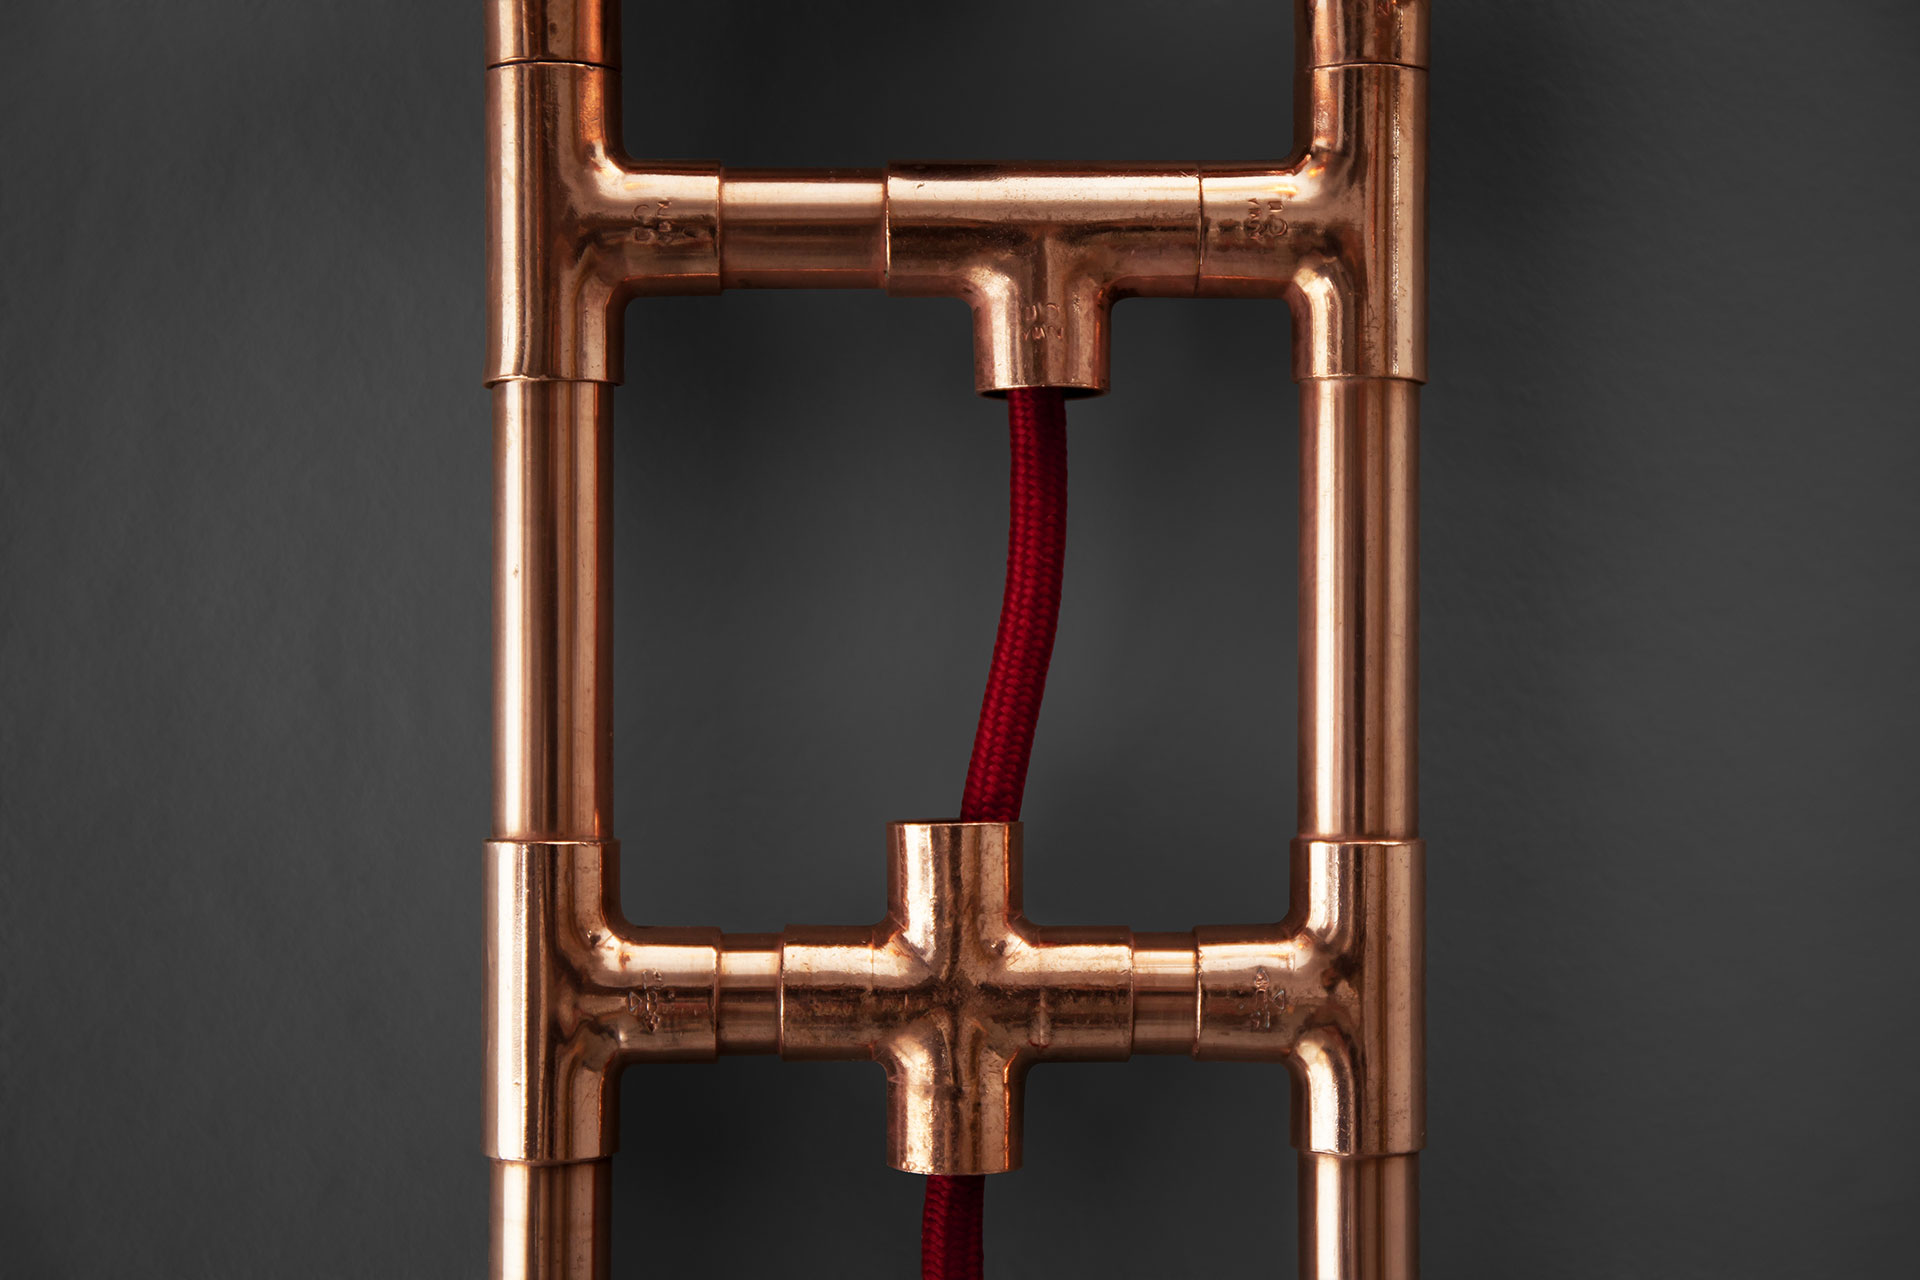 Copper pipe wall lamp with red cord